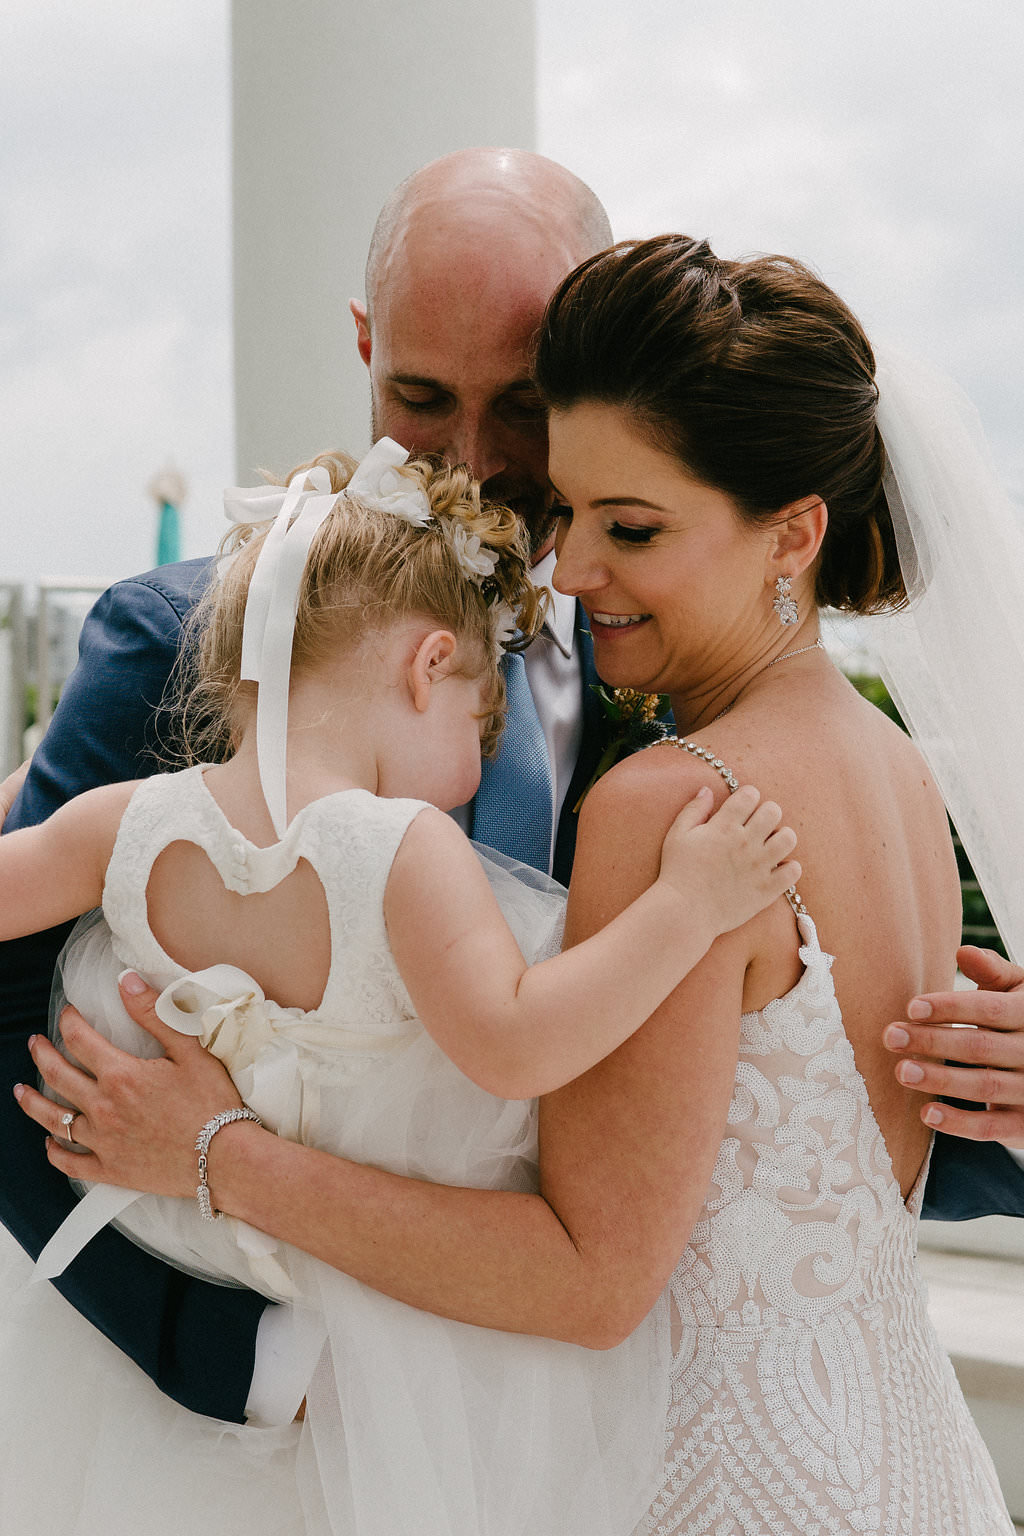 Outdoor Bride, Groom and Daughter/Flower Girl Wedding Portrait, Groom in Navy Blue Suit, Bride in Plunging Neckline Sequin Lace, Nude Lining and Rhinestone Spaghetti Strap Wedding Dress and Veil | Tampa Bay Photographer Grind and Press | Hair and Makeup Michele Renee the Studio